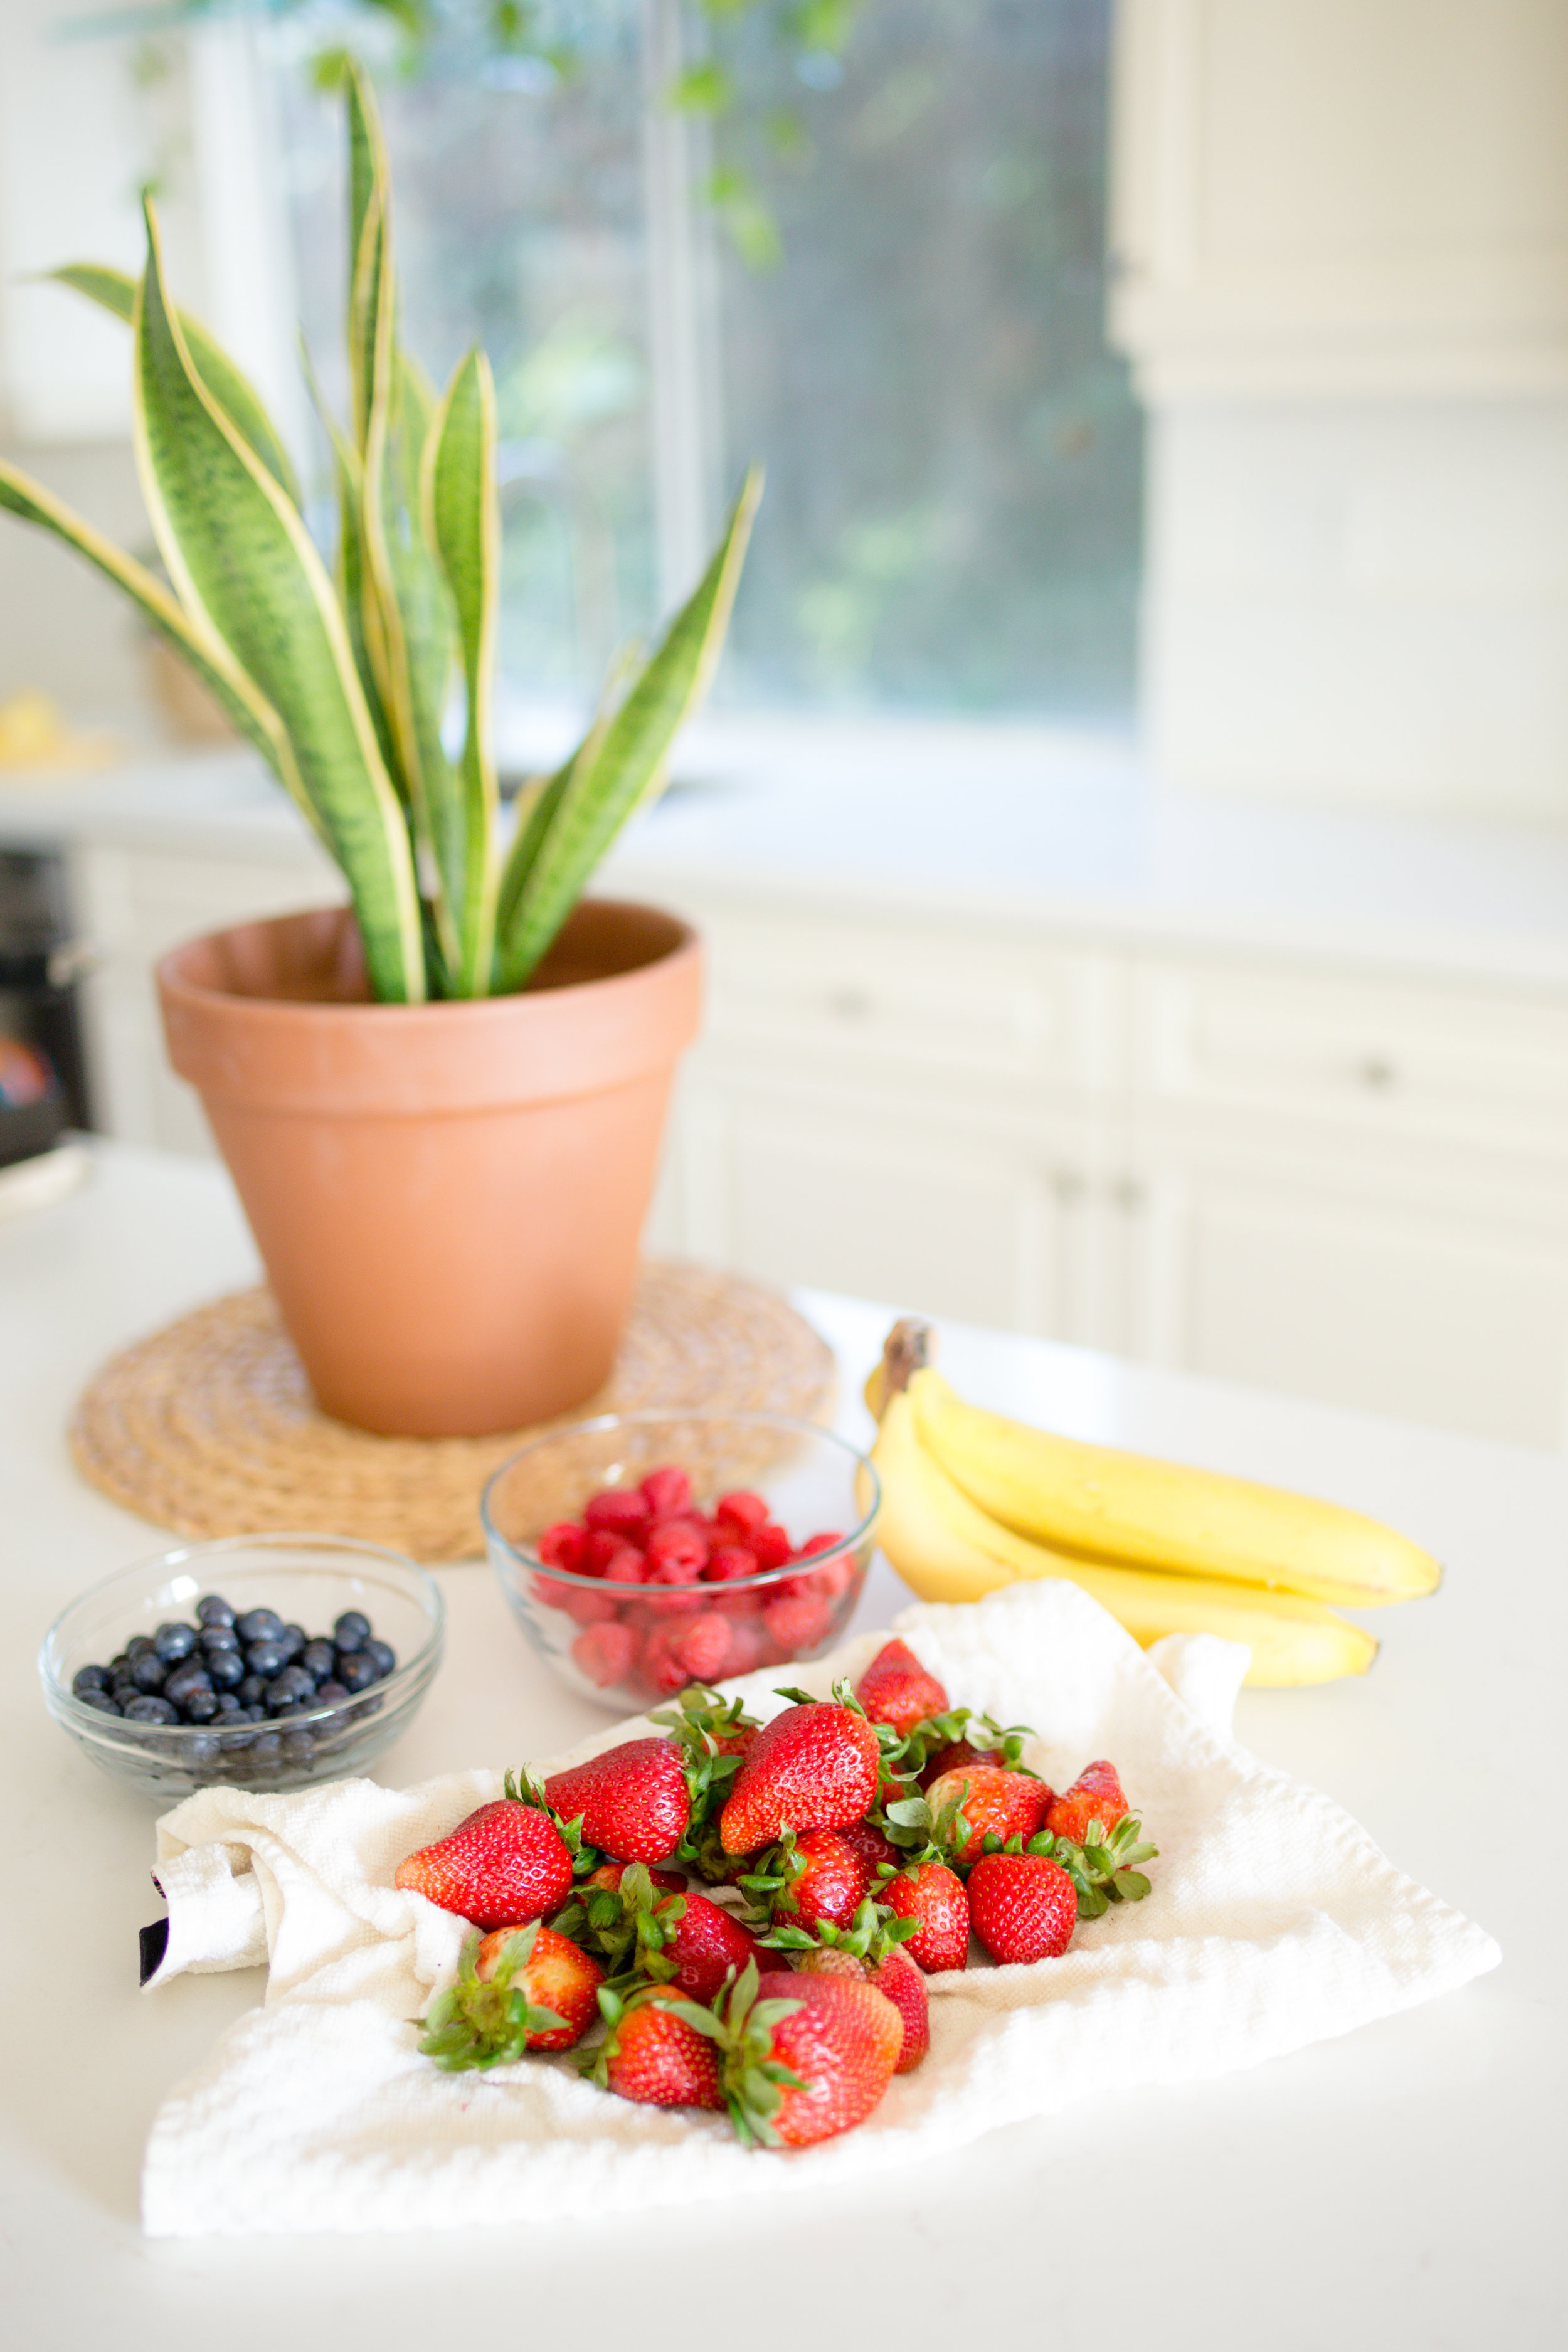 Freshly washed strawberries, blueberries, and raspberries ready to be used in a healthy breakfast banana split